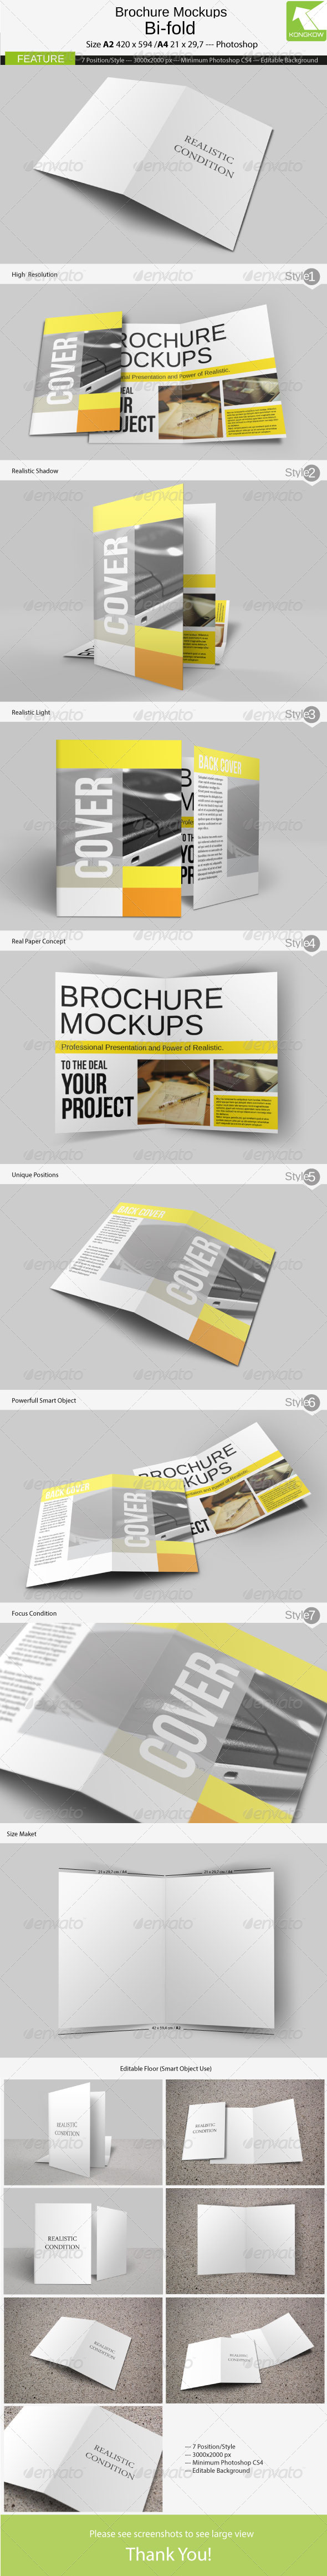 Brochure Mockups 4 Pages - Print Product Mock-Ups